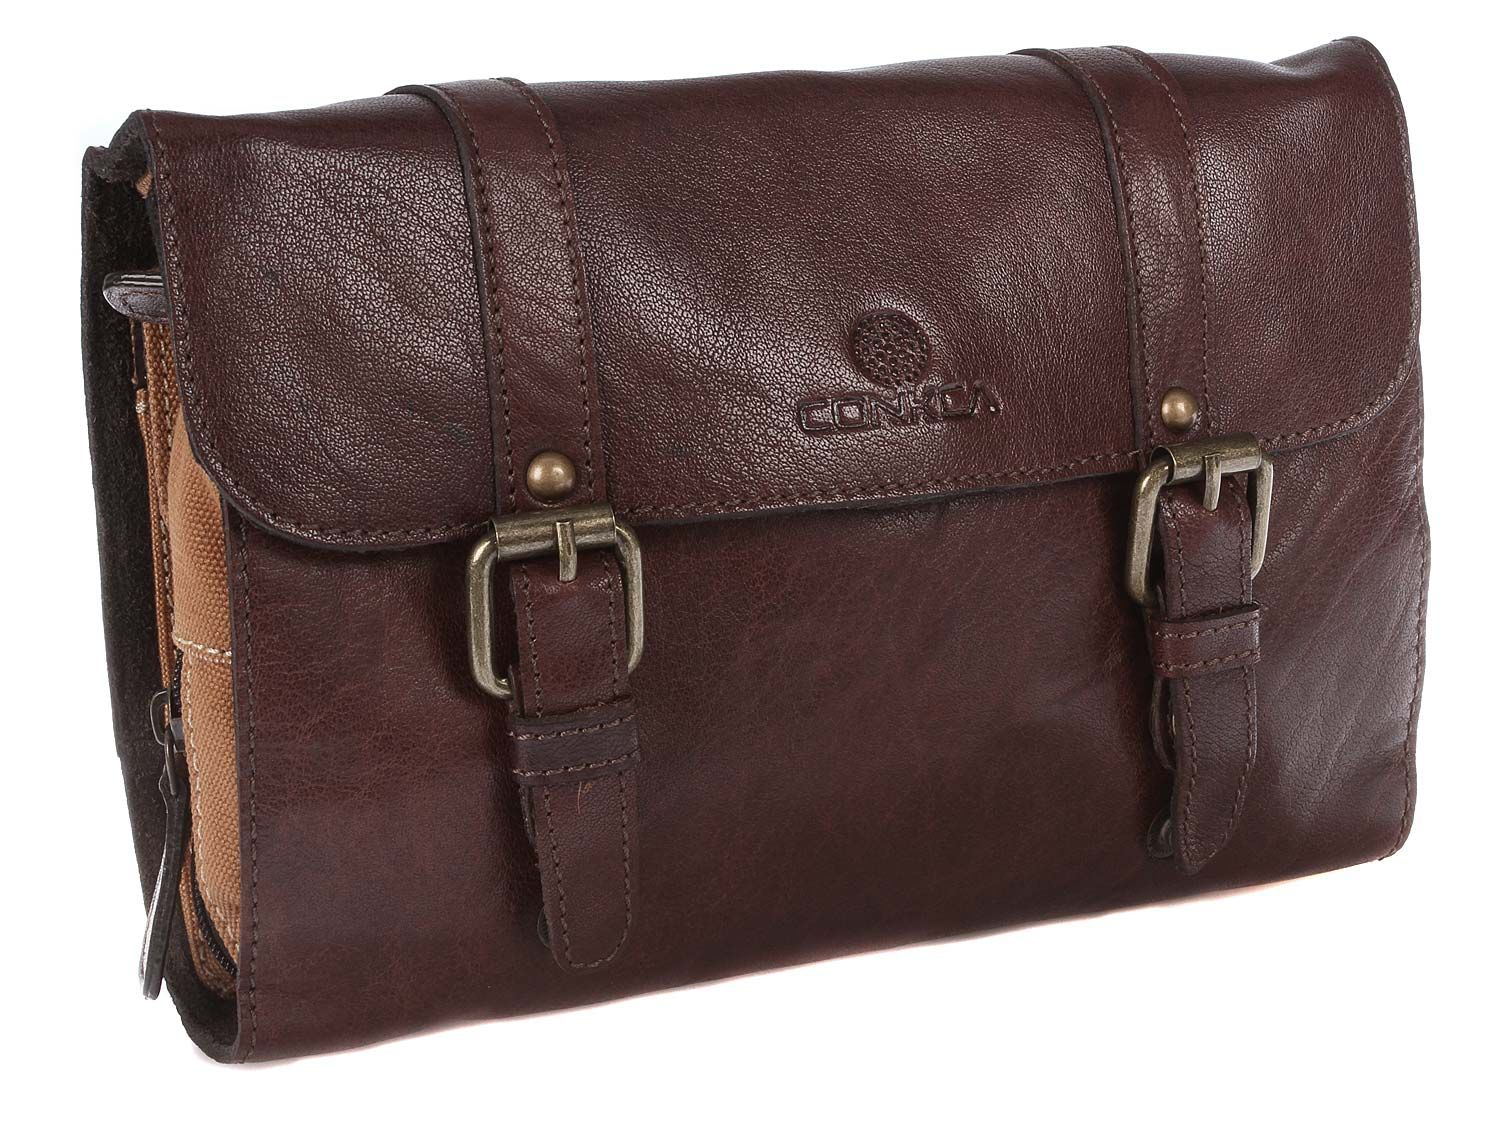 Conkca - London 'Grasmere' Conker Brown Vintage Styled Leather Wash Bag WB1CB-GRASMERE   pureluxuries.com